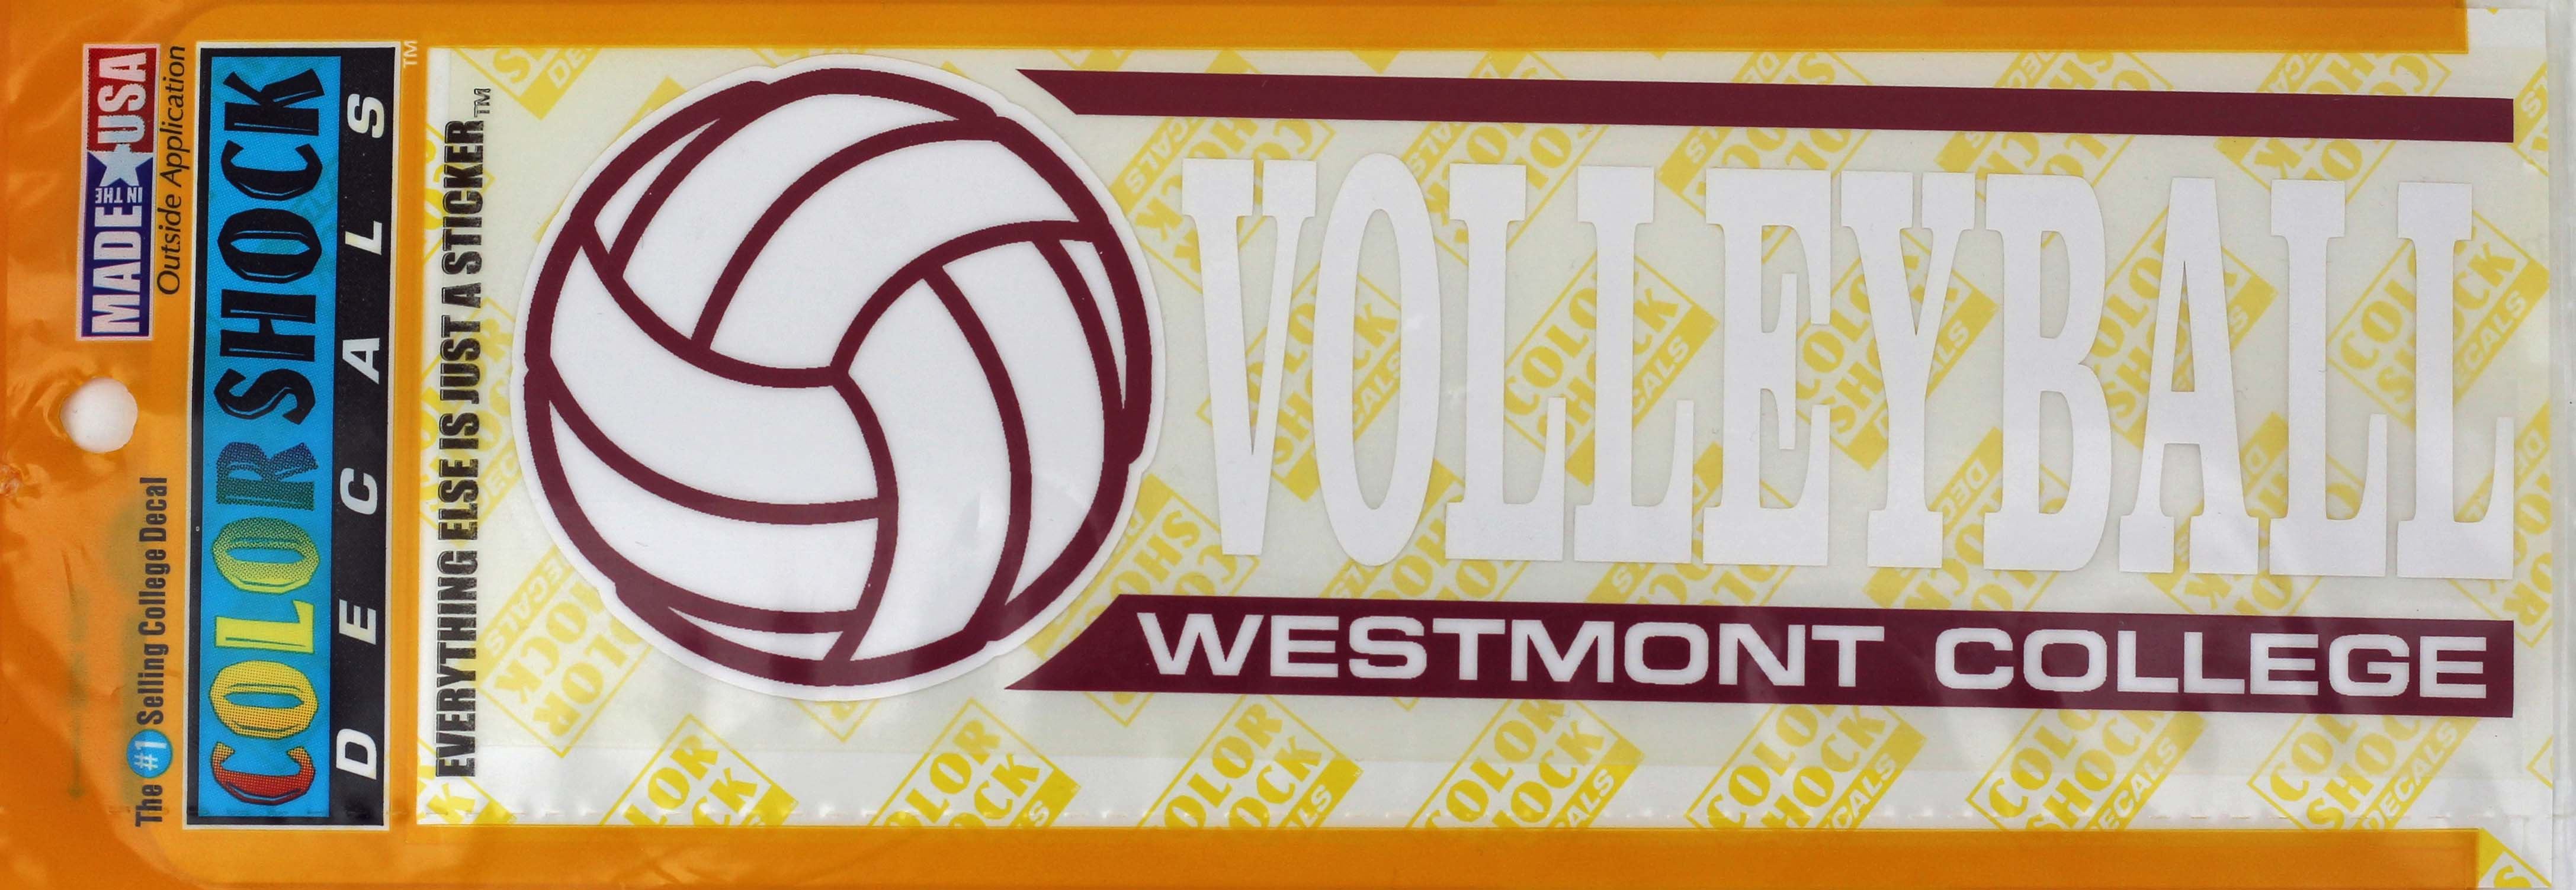 Image for the Color Shock Volleyball Decal product